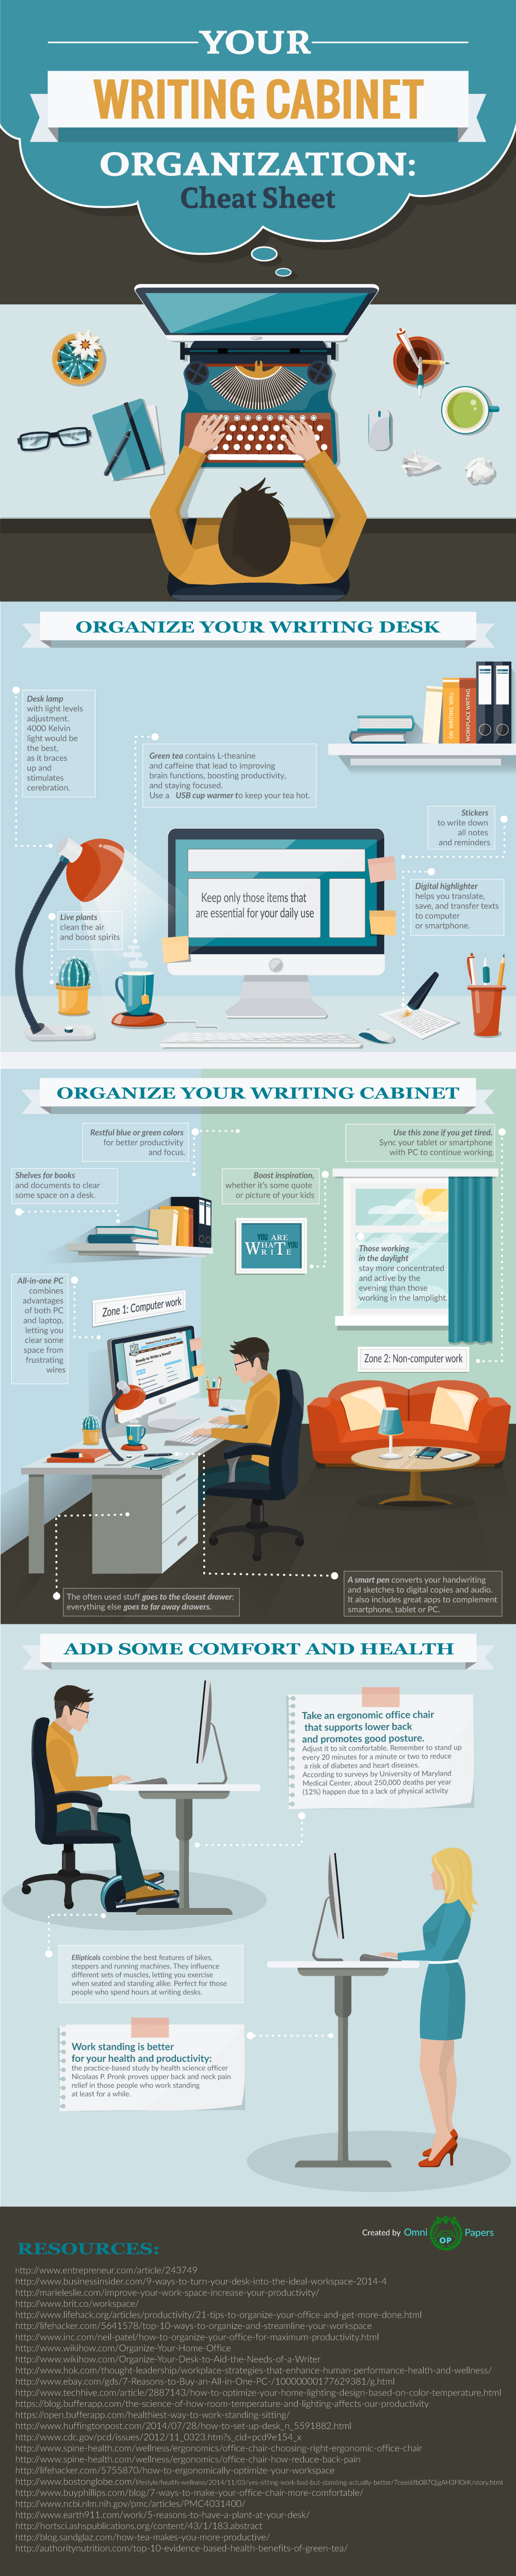 How to Organize your Writing Cabinet (Cheat Sheet)